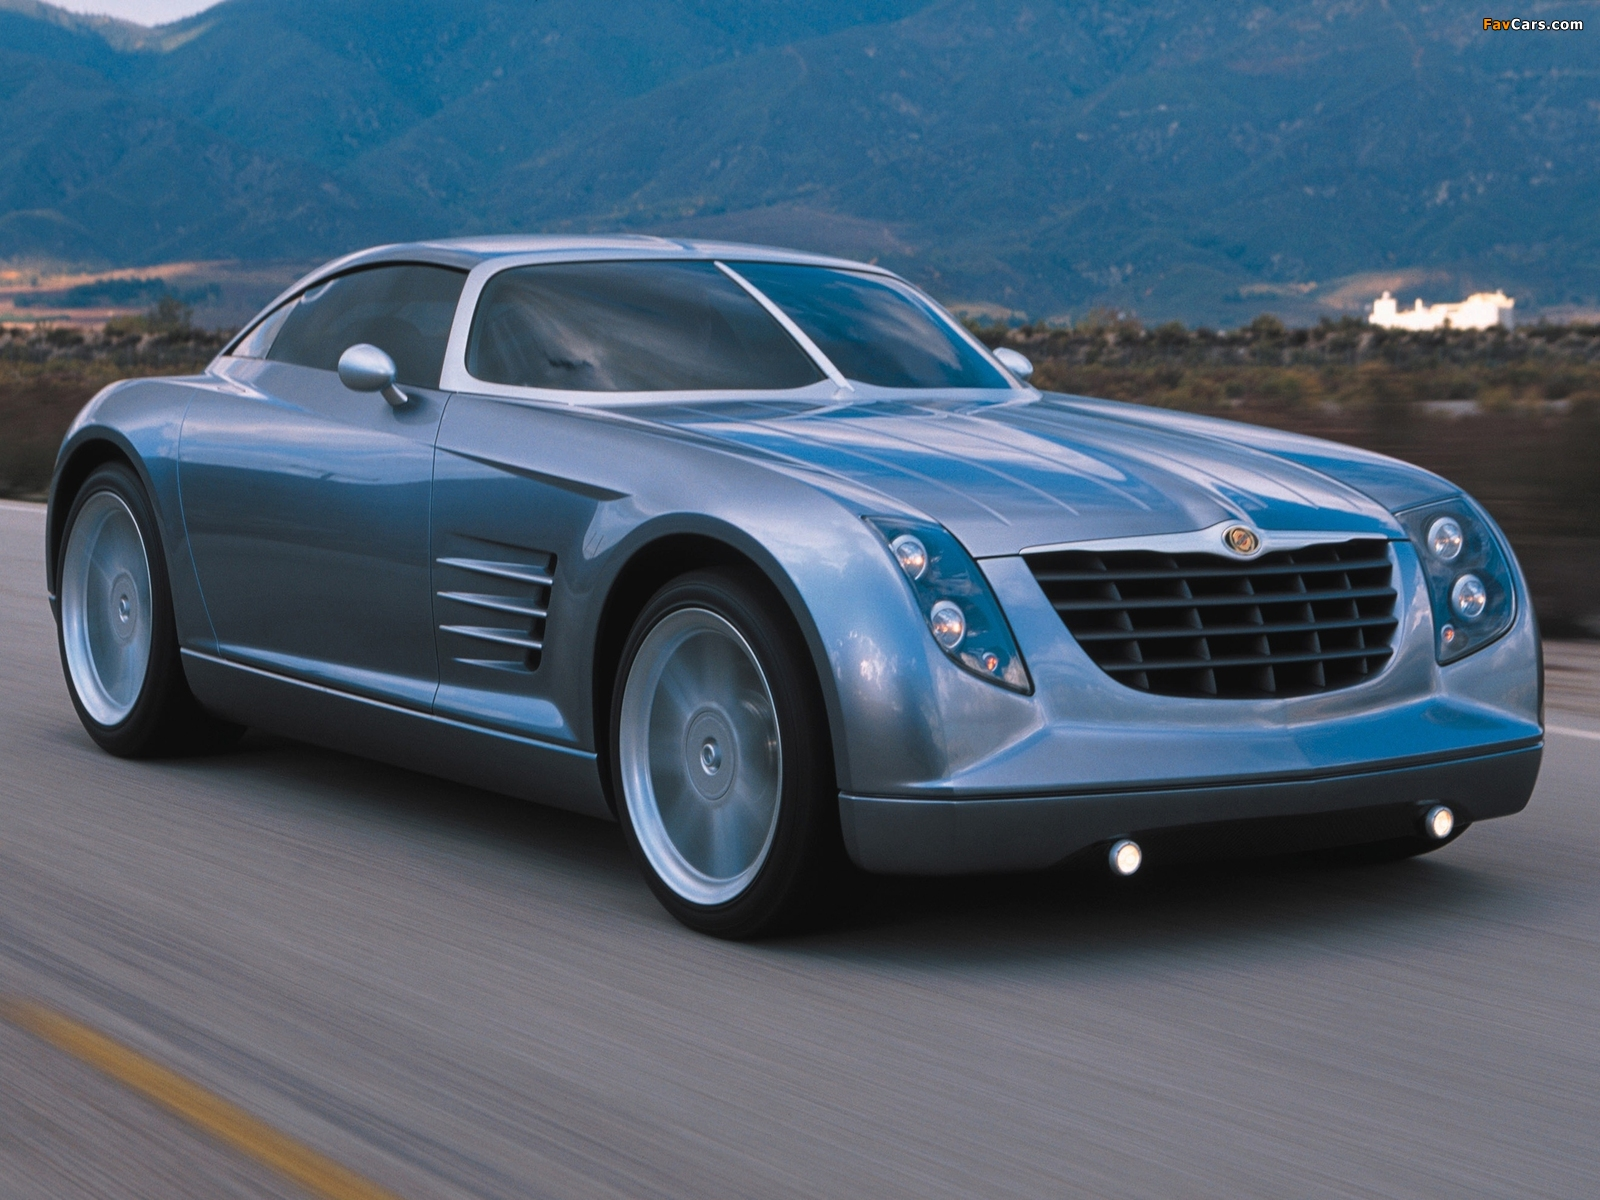 Chrysler Crossfire Concept 2001 photos (1600 x 1200)